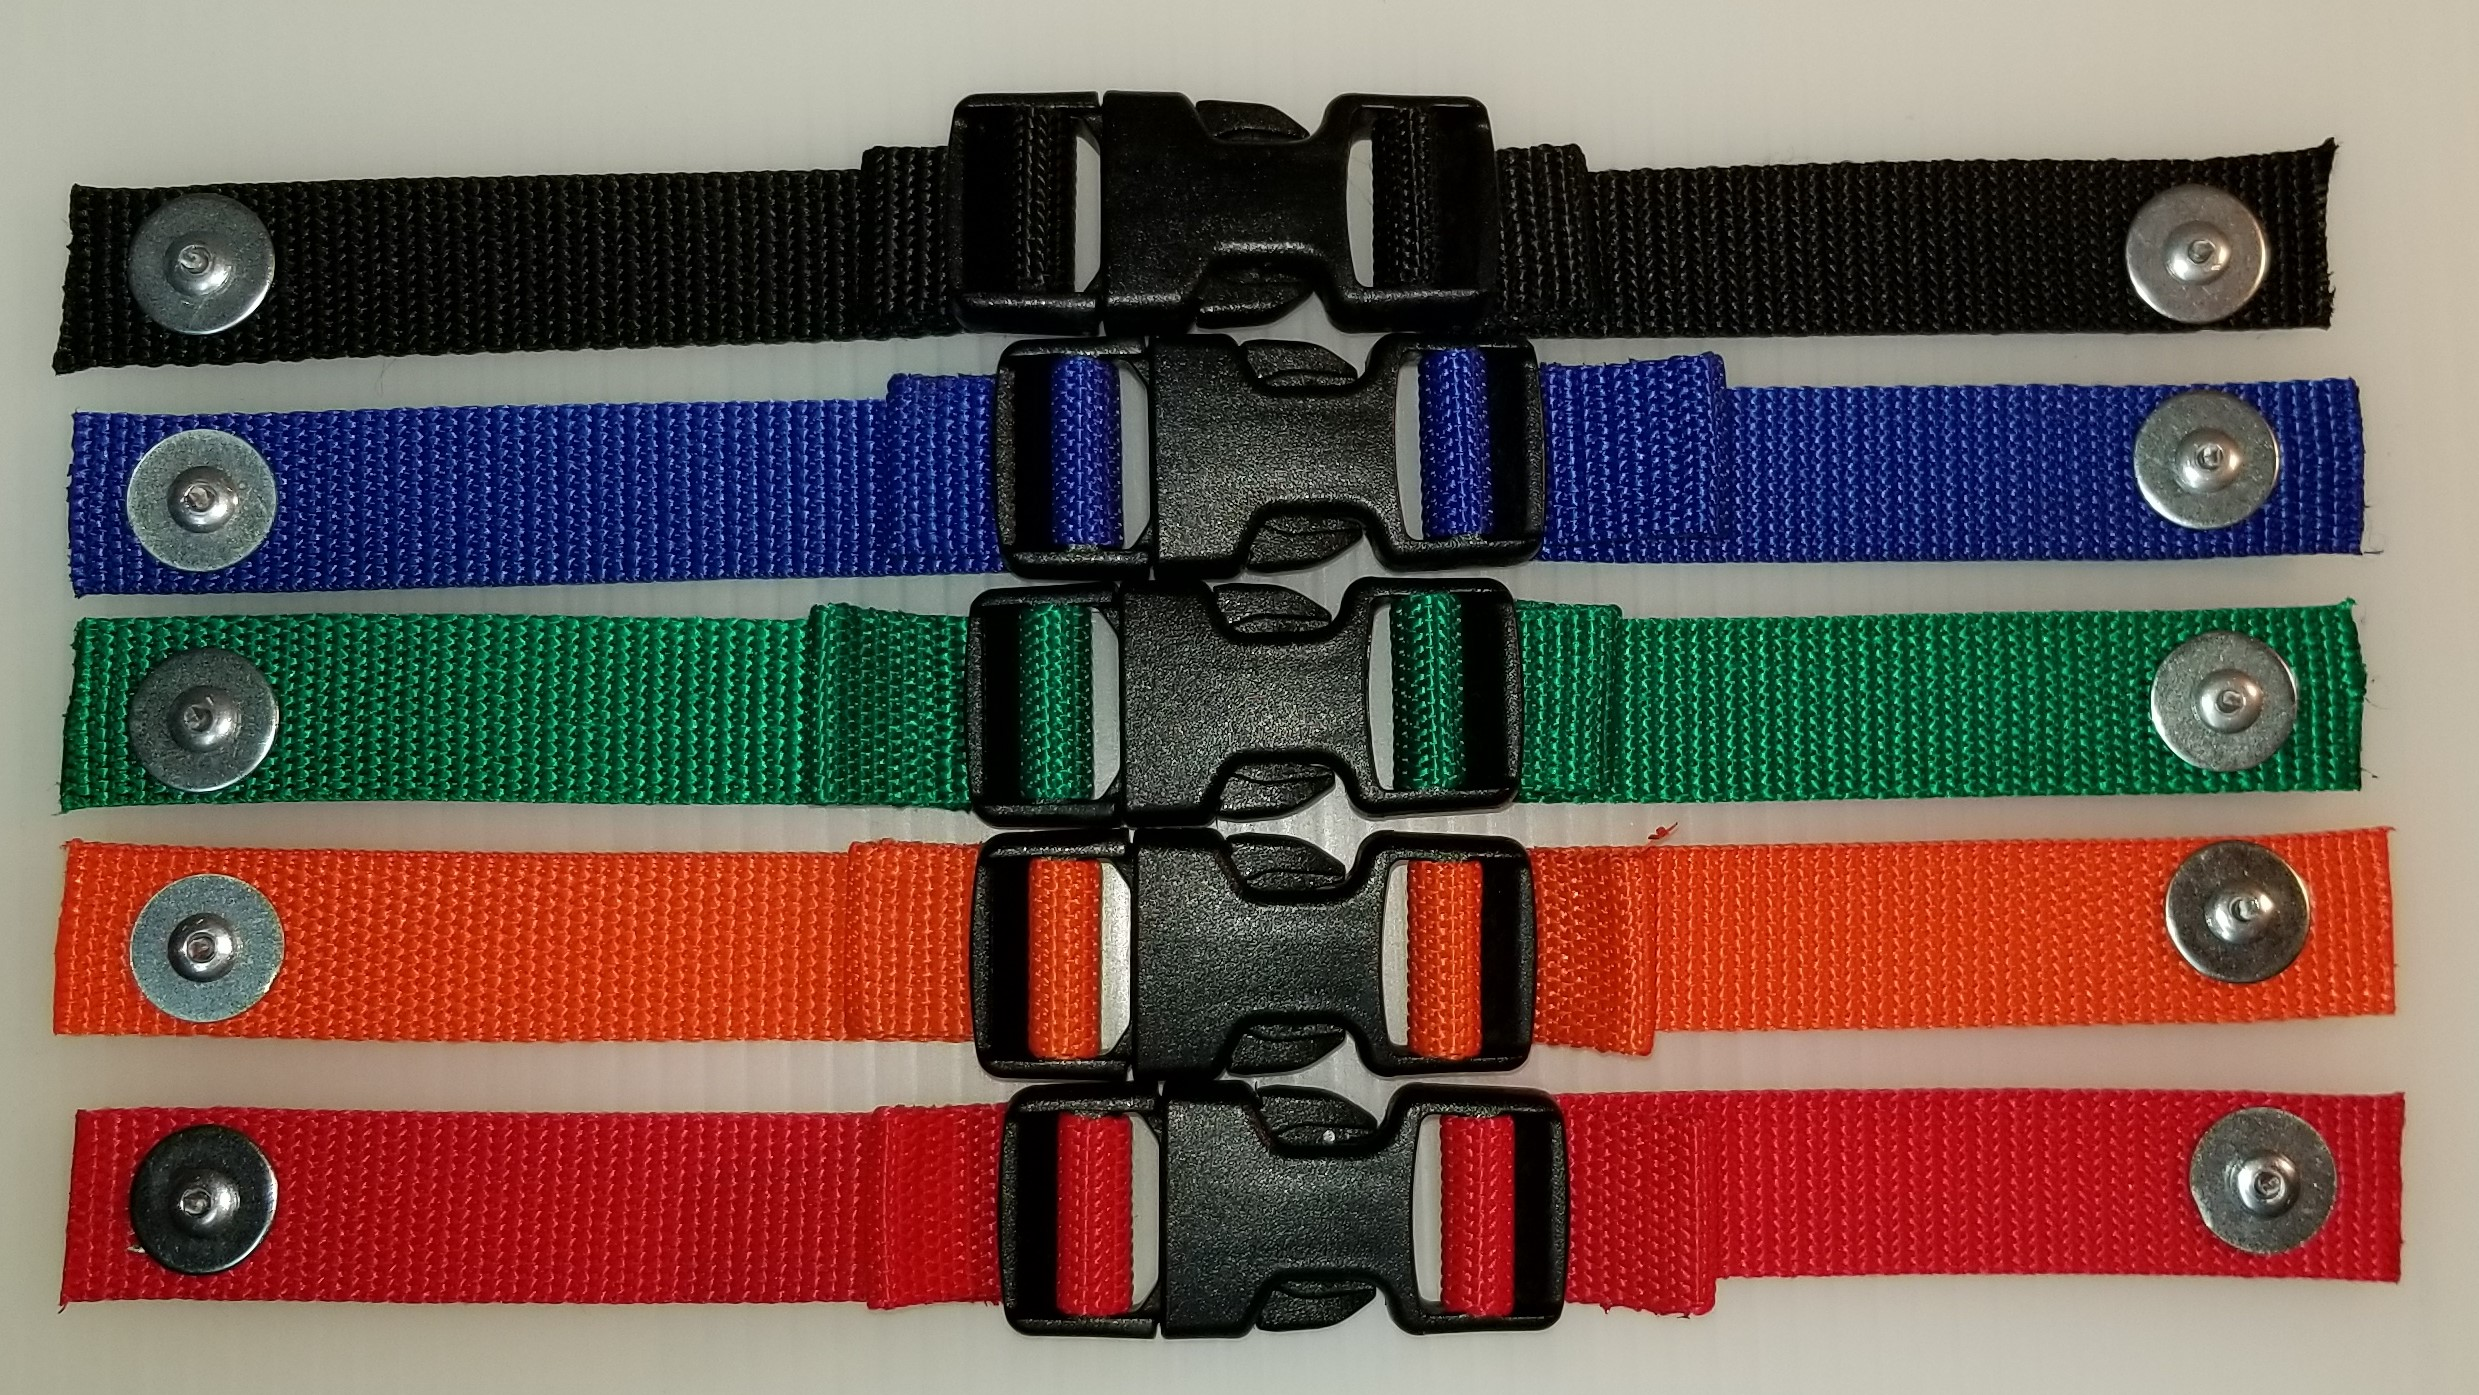 The New Webbing Color Choices are  Black, Blue, Green, Orange and Red